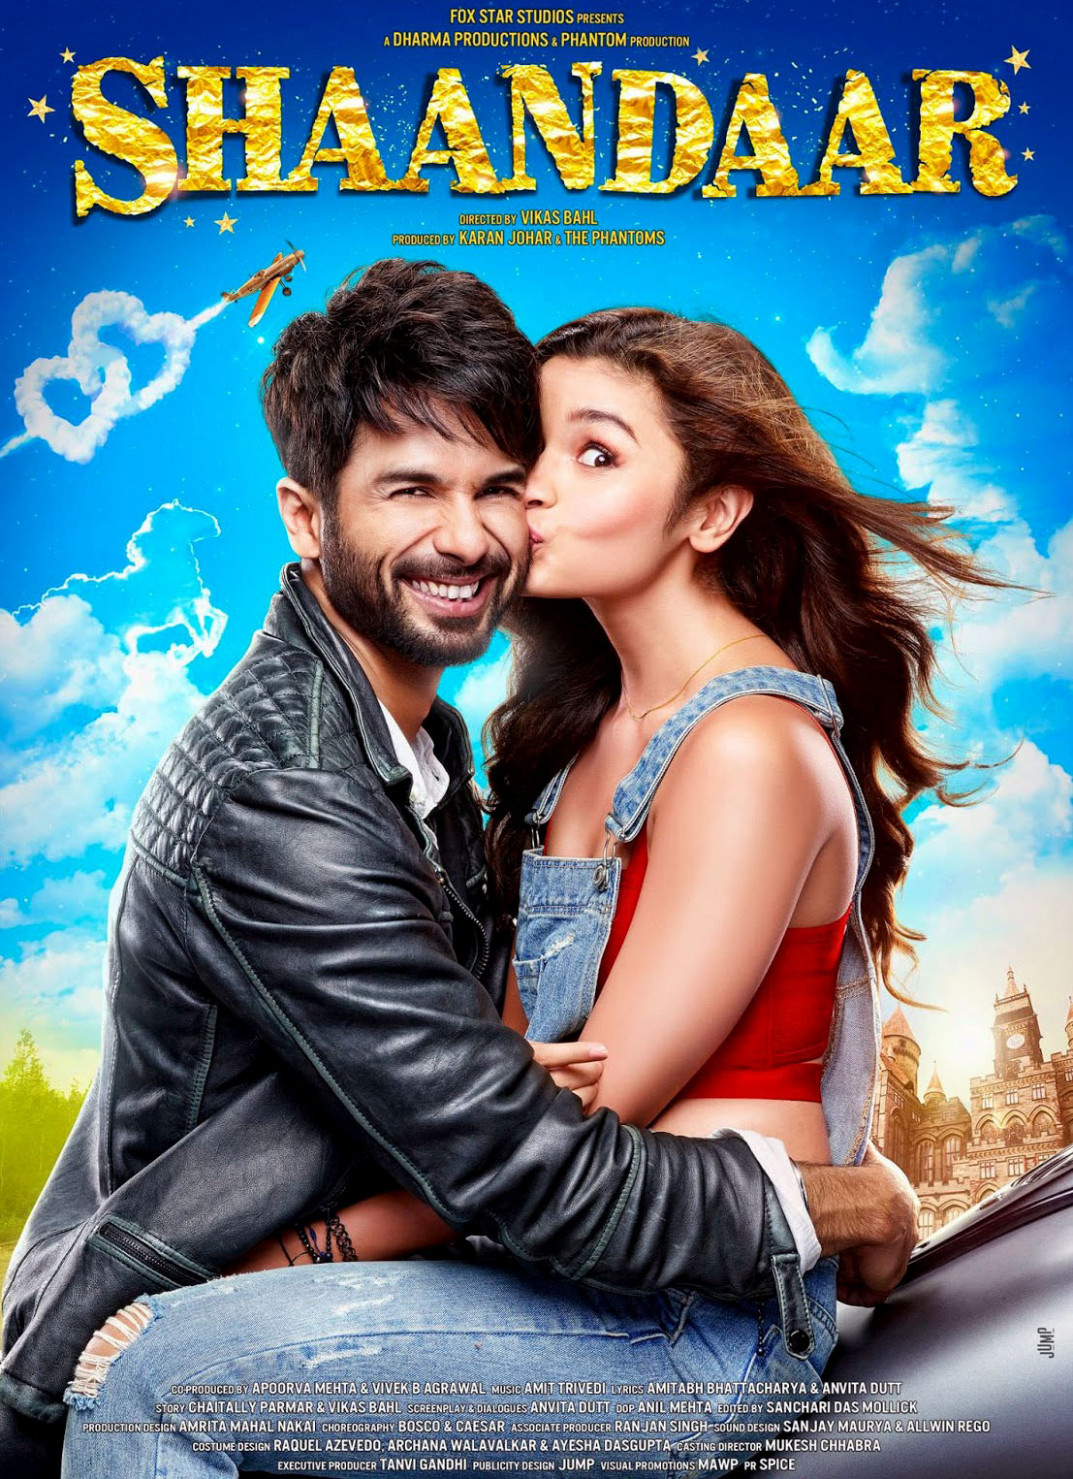 Shaandaar Hindi Full Movie Watch Online | Todaypk Movies